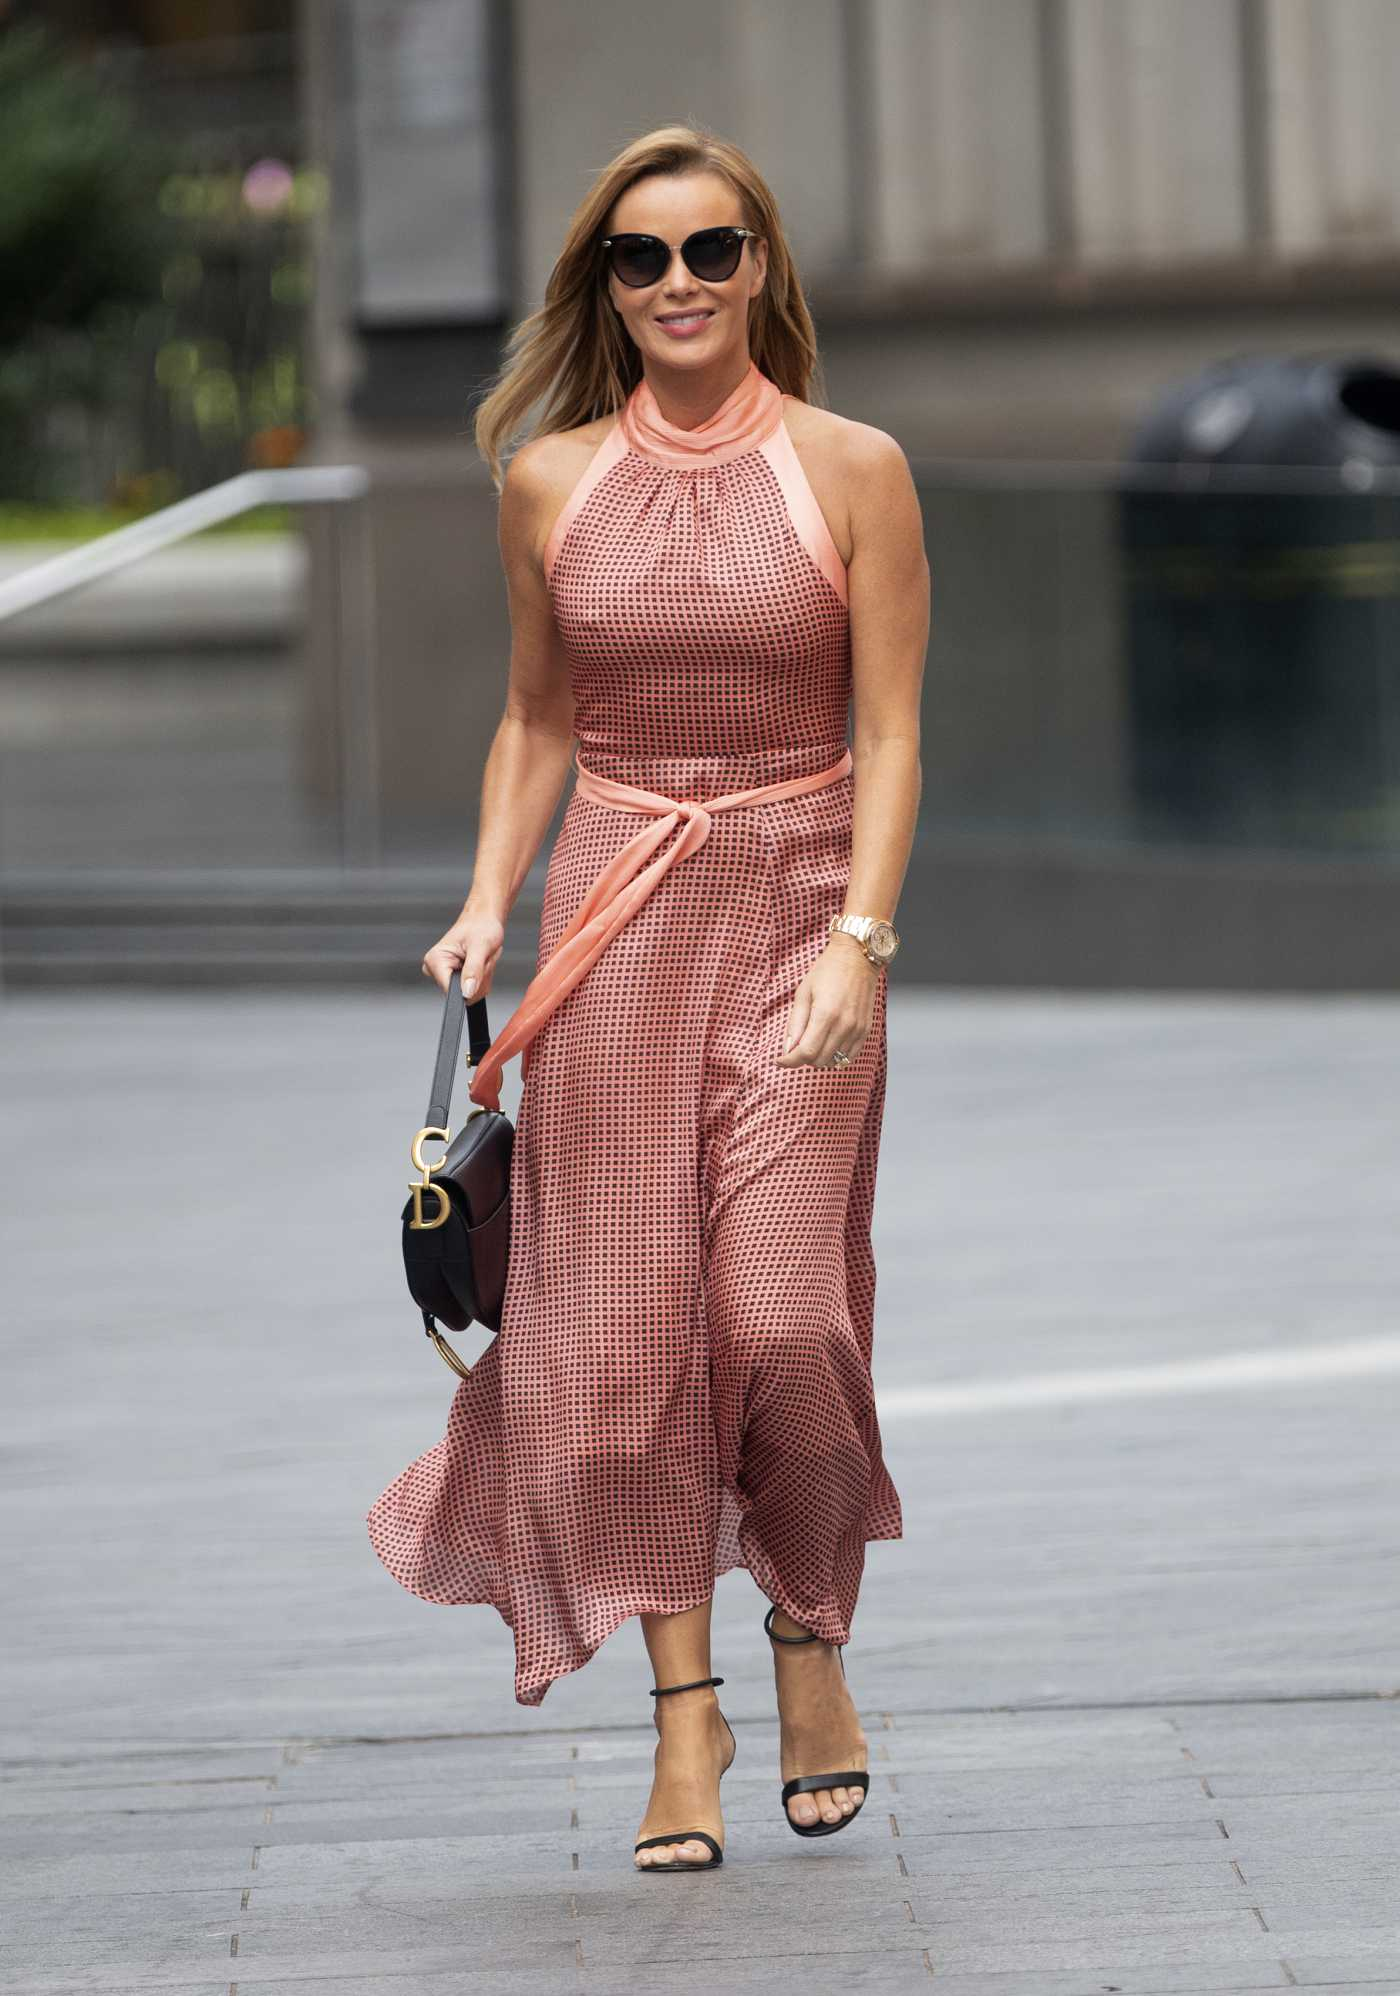 Amanda Holden in a Tight Dress Arrives at the Heart Radio in London 09/07/2020